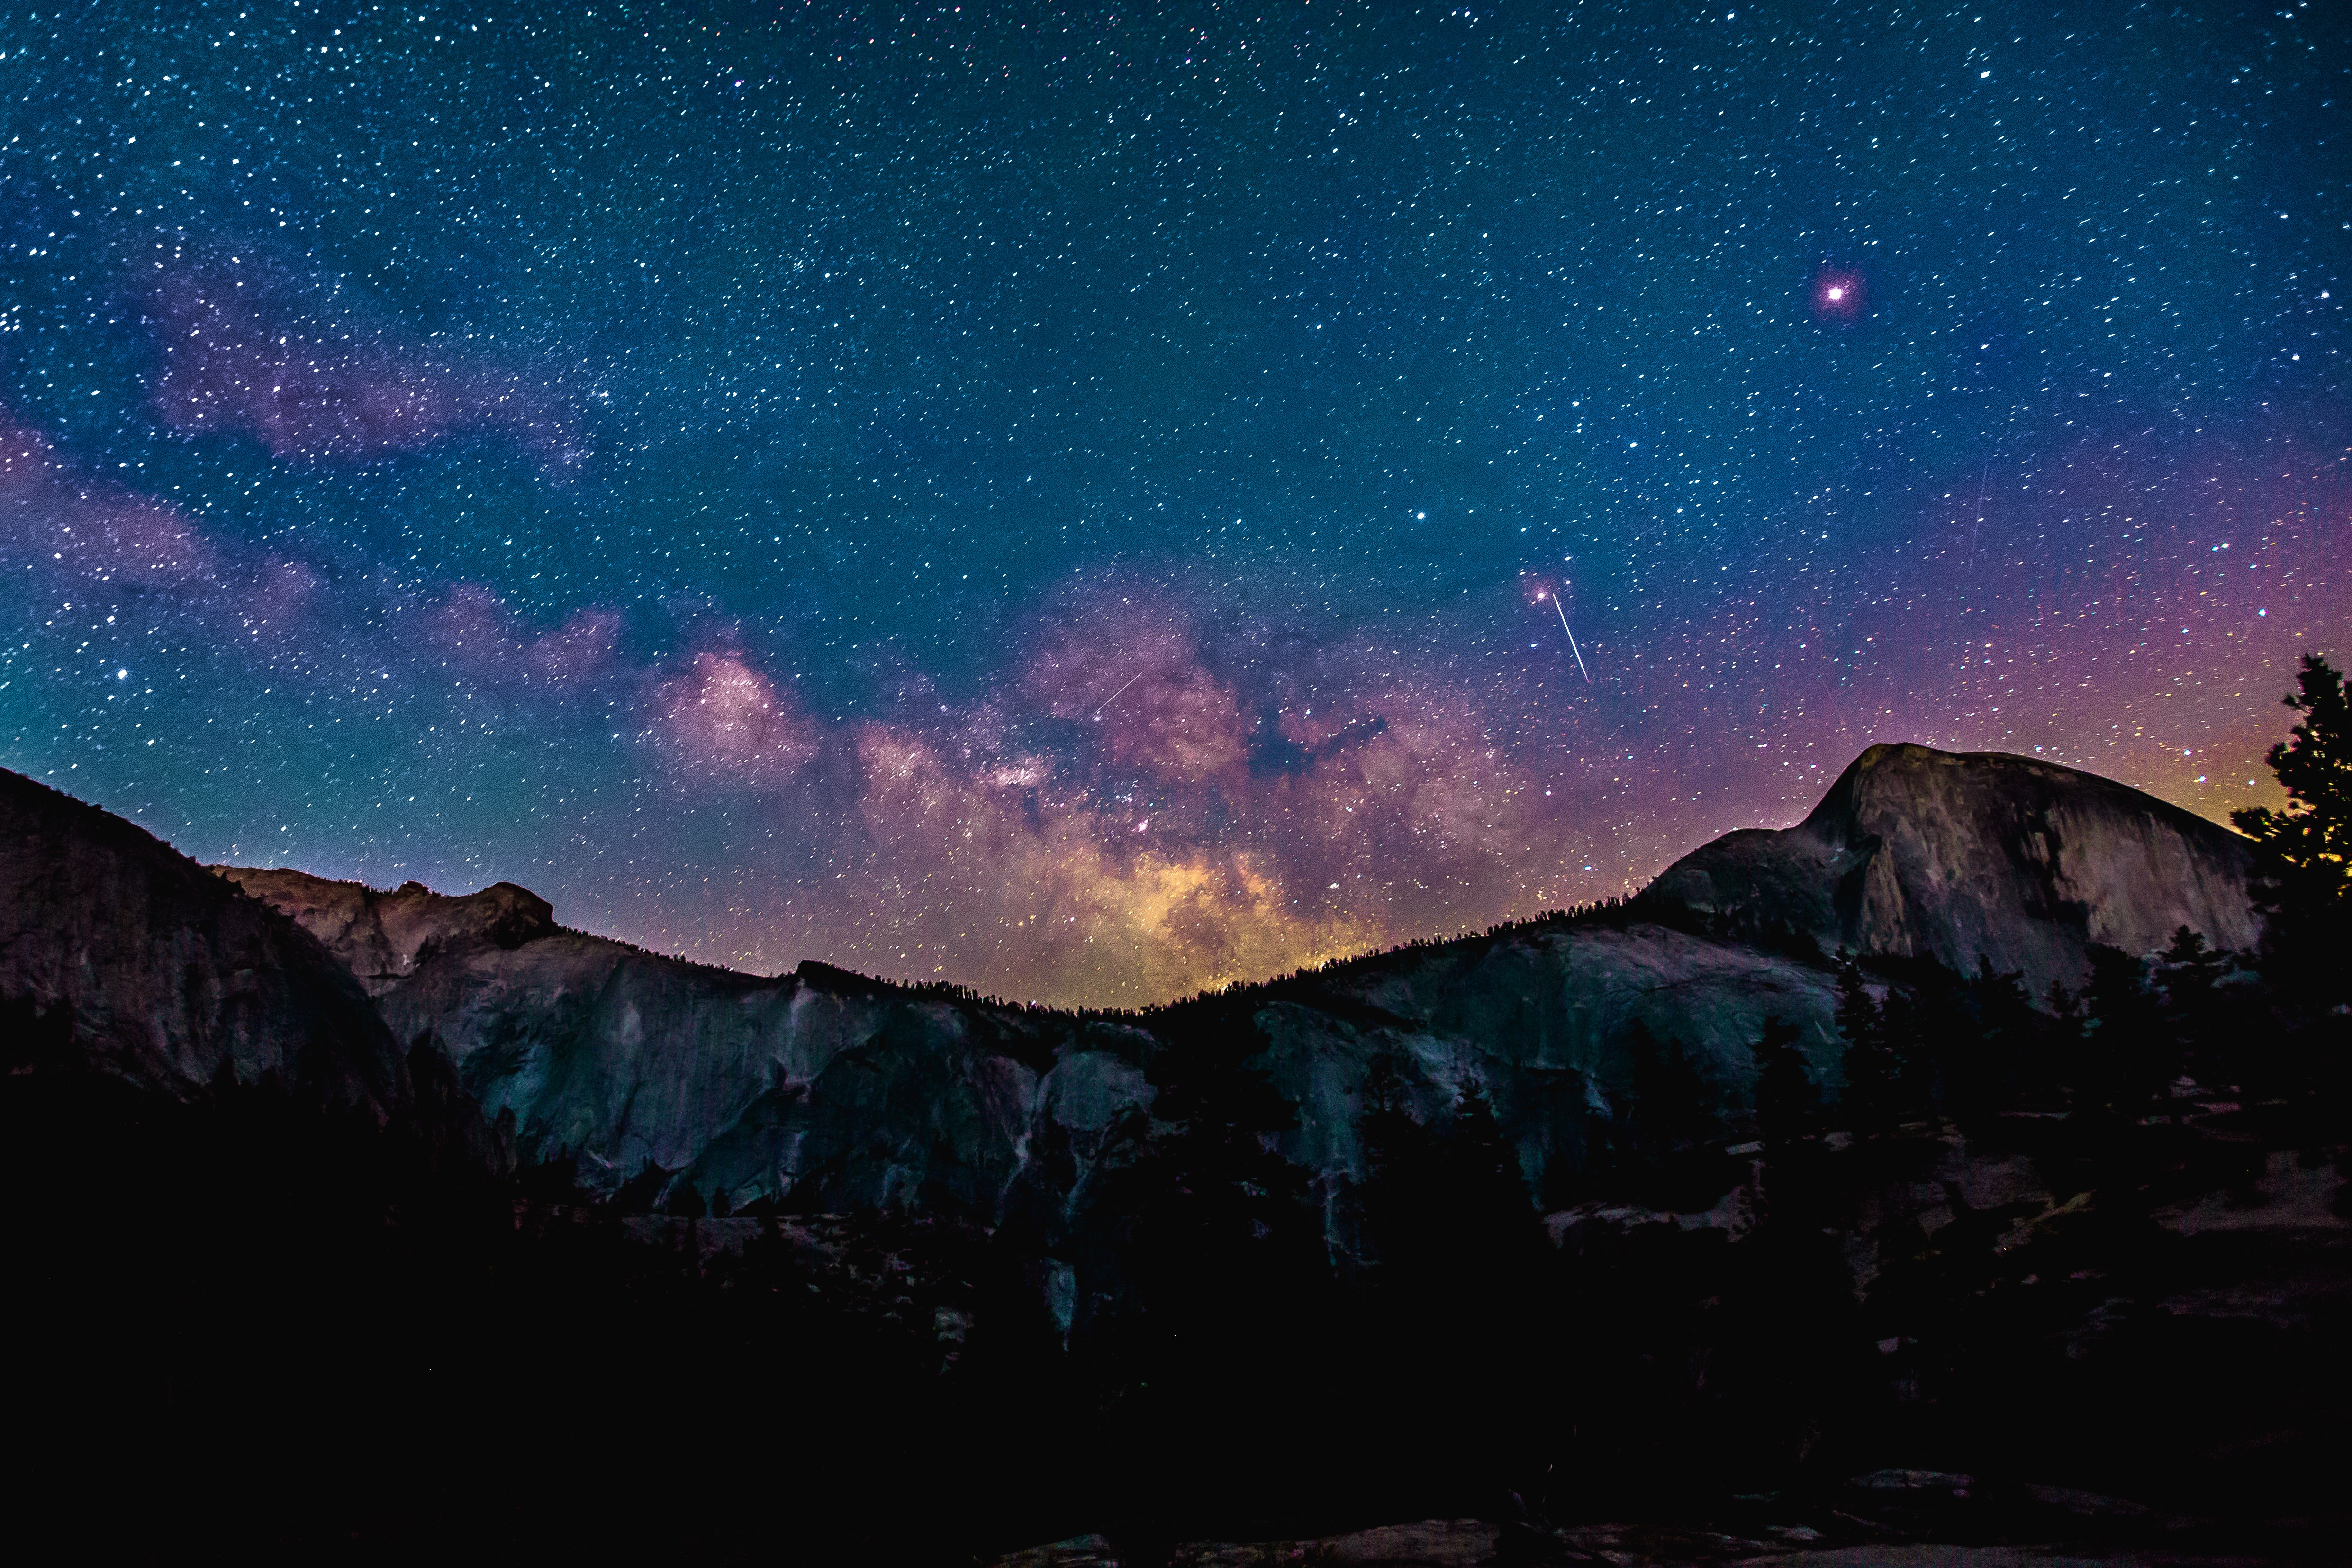 Purple-hued constellations in the night sky over a mountain ridge